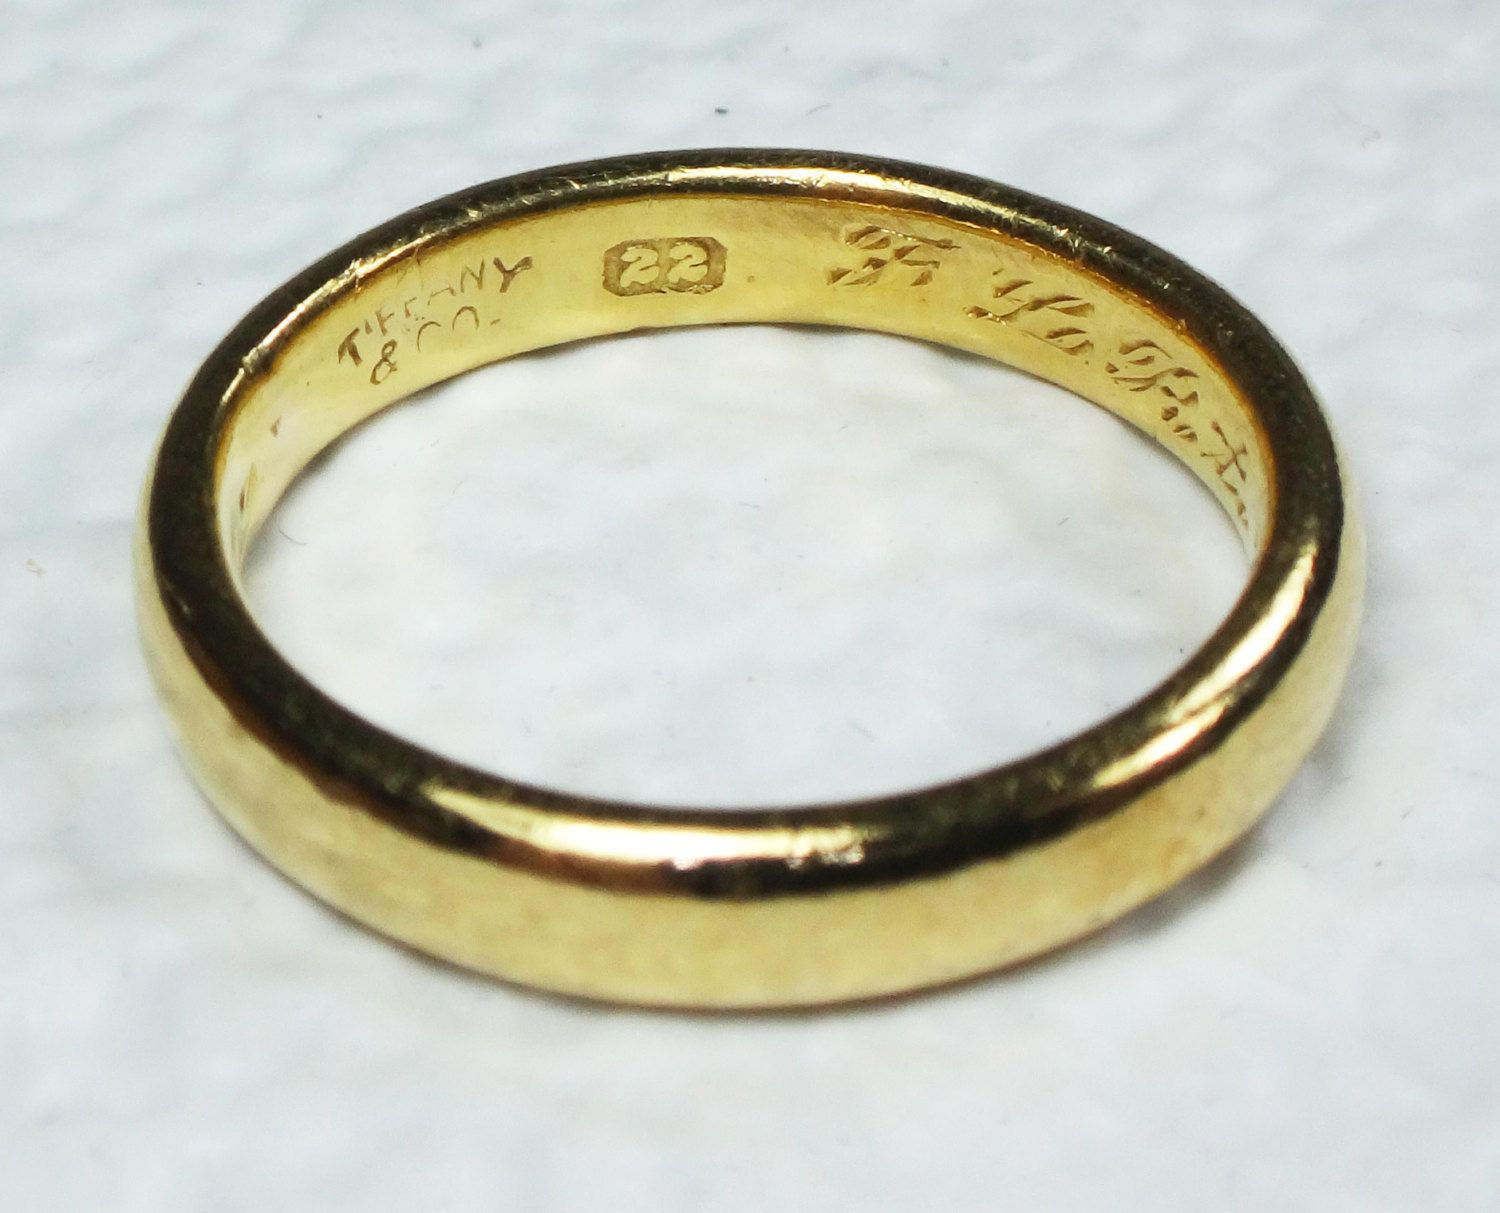 Tiffany Ring Antique Tiffany Co Yellow Gold Wedding 22K Band Gold